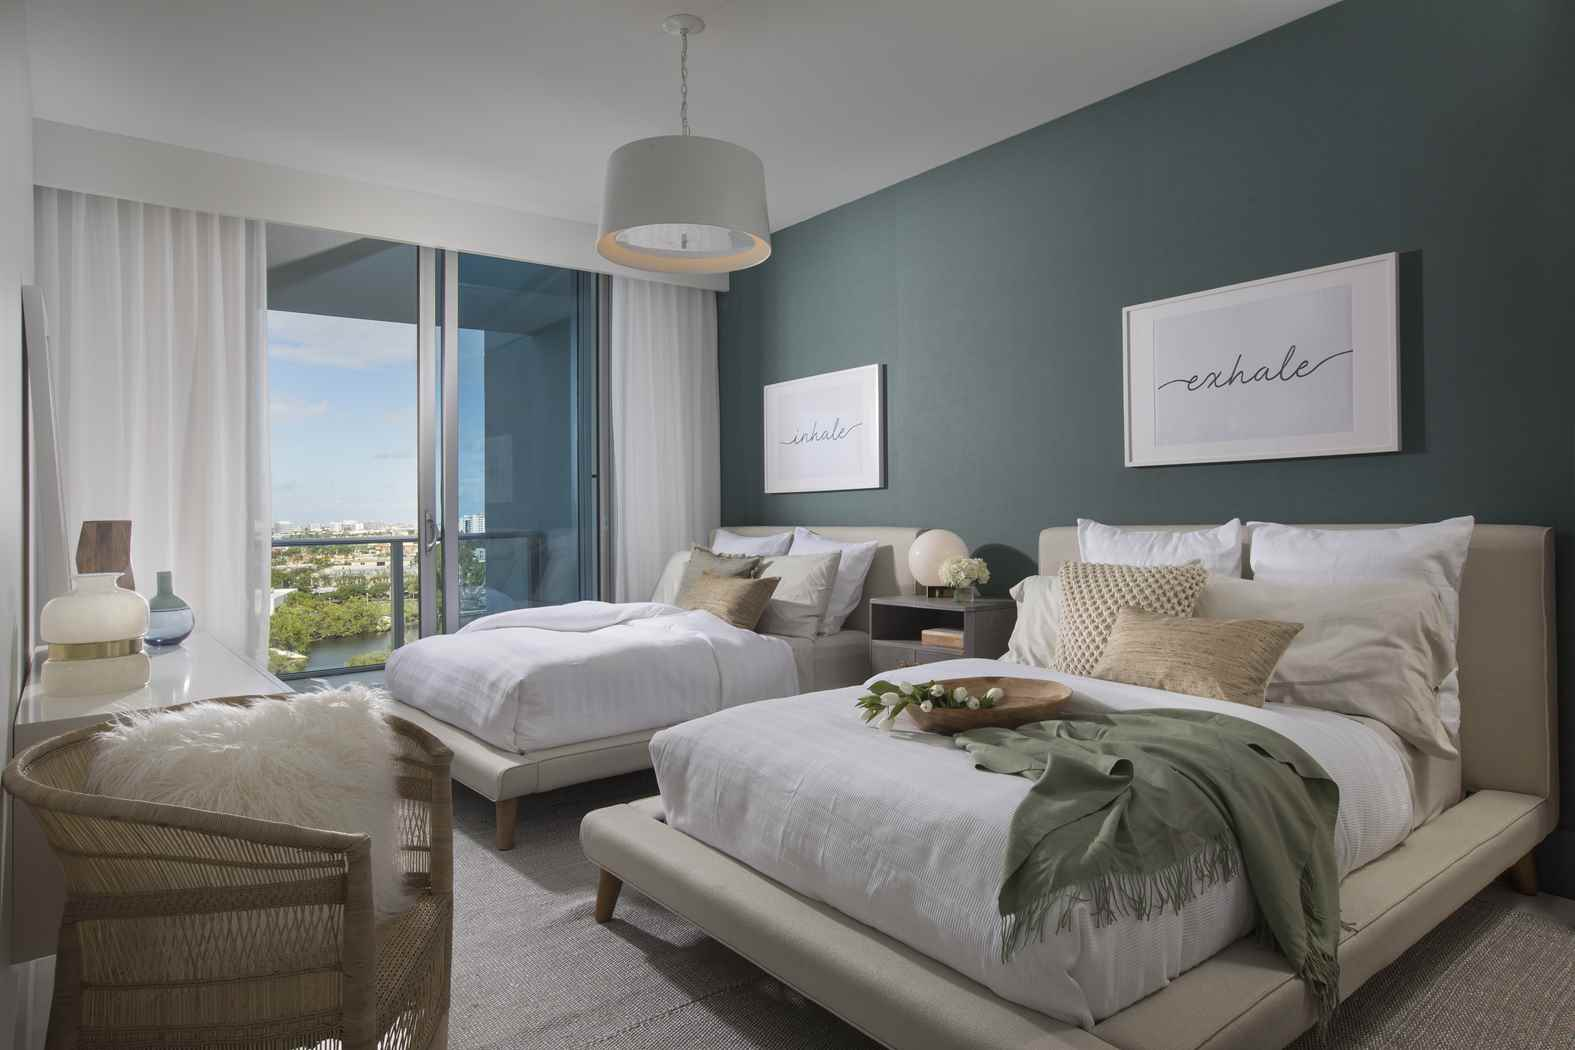 Modern coastal miami condo residential interior design from dkor interiors